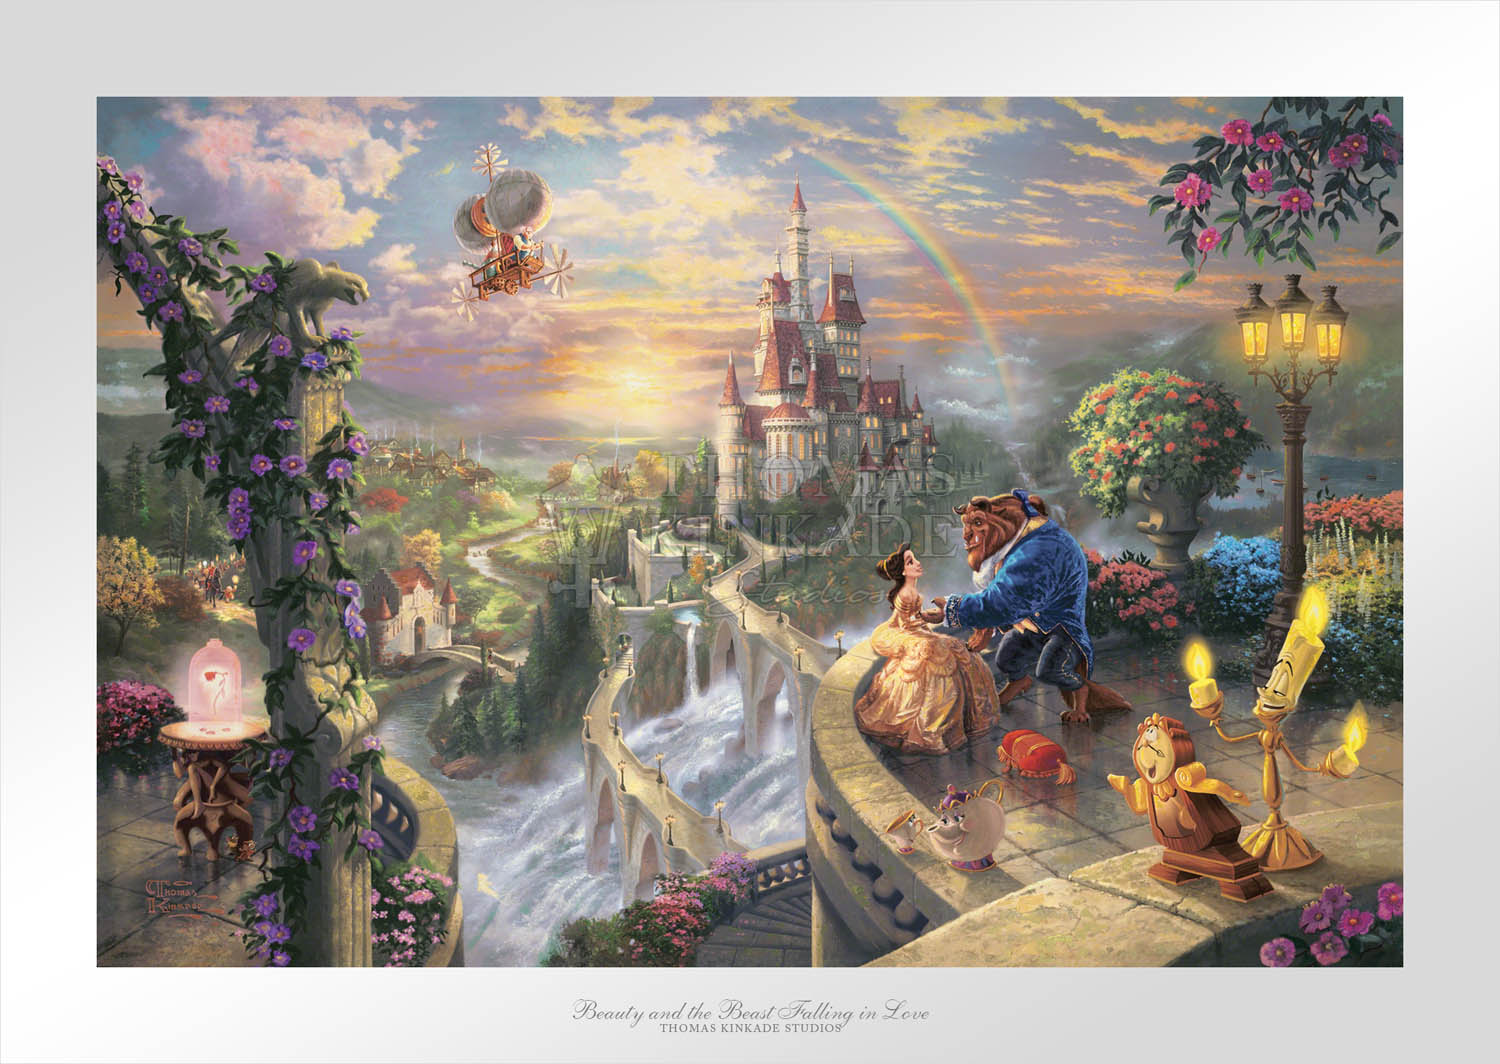 Beauty and the beast falling in love limited edition art